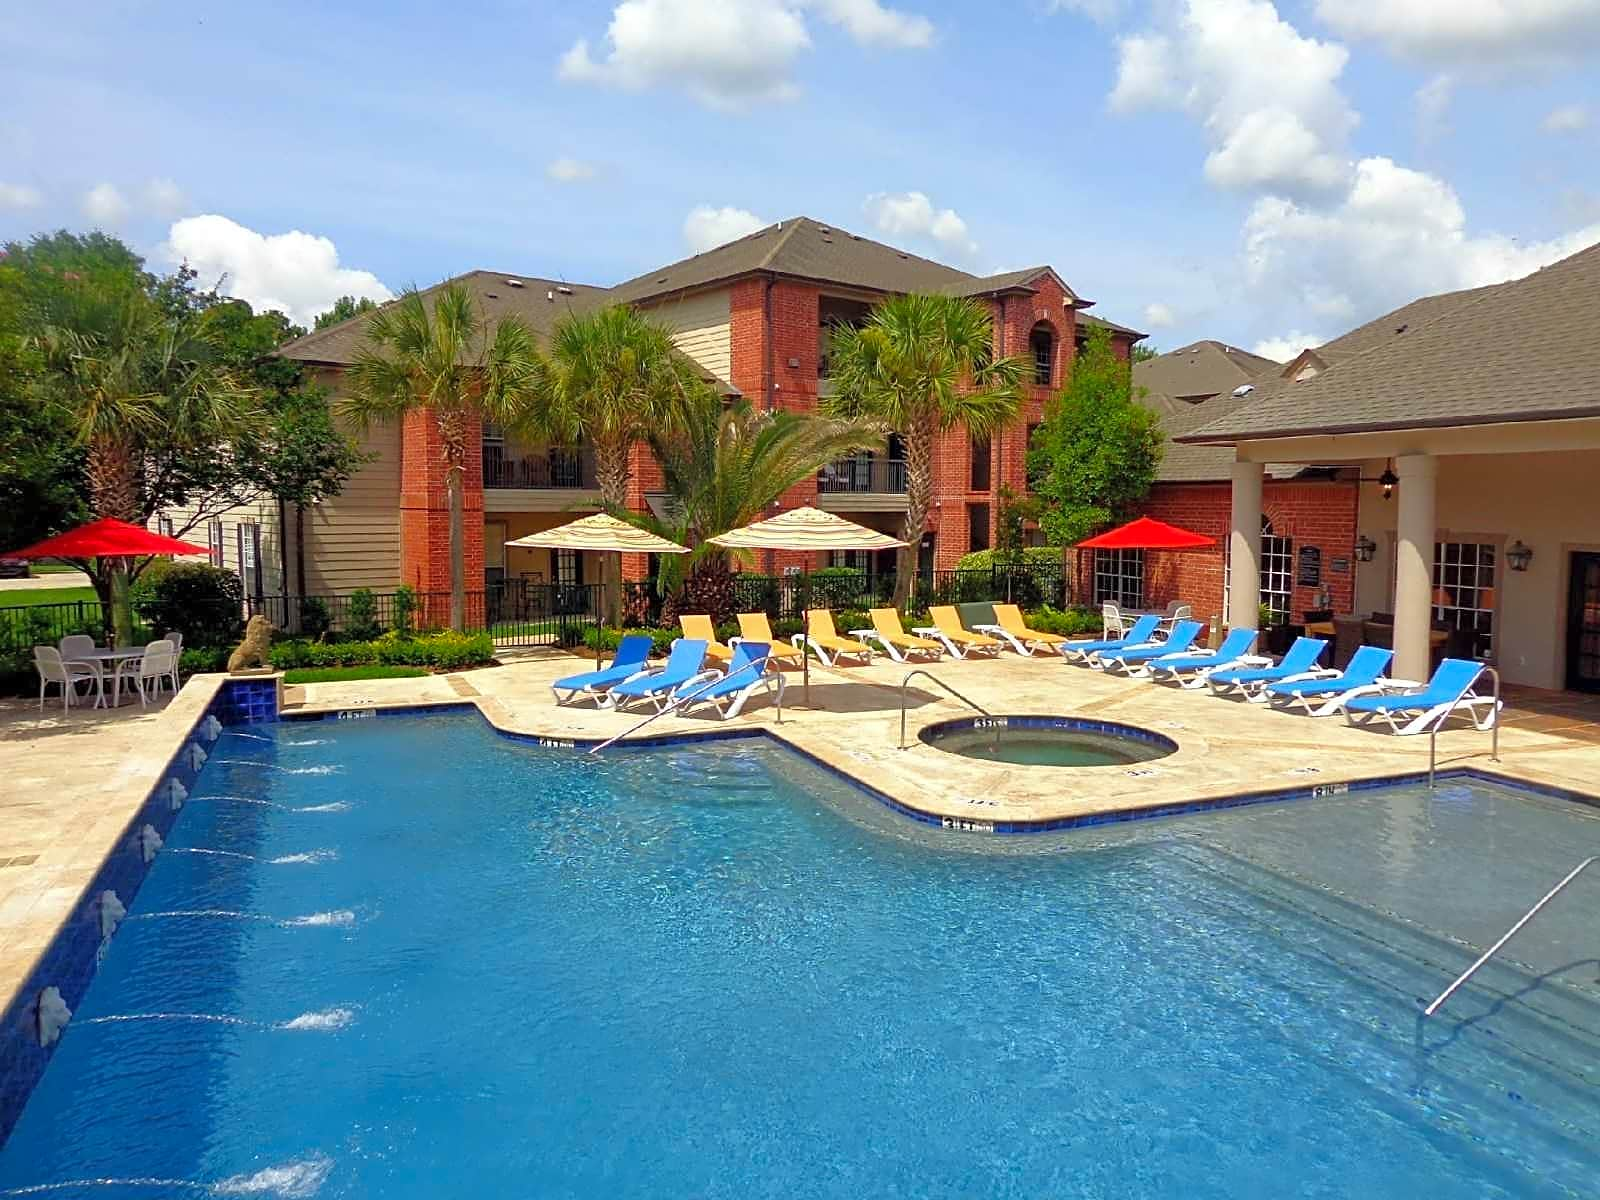 Turnberry Place Apartments Baton Rouge